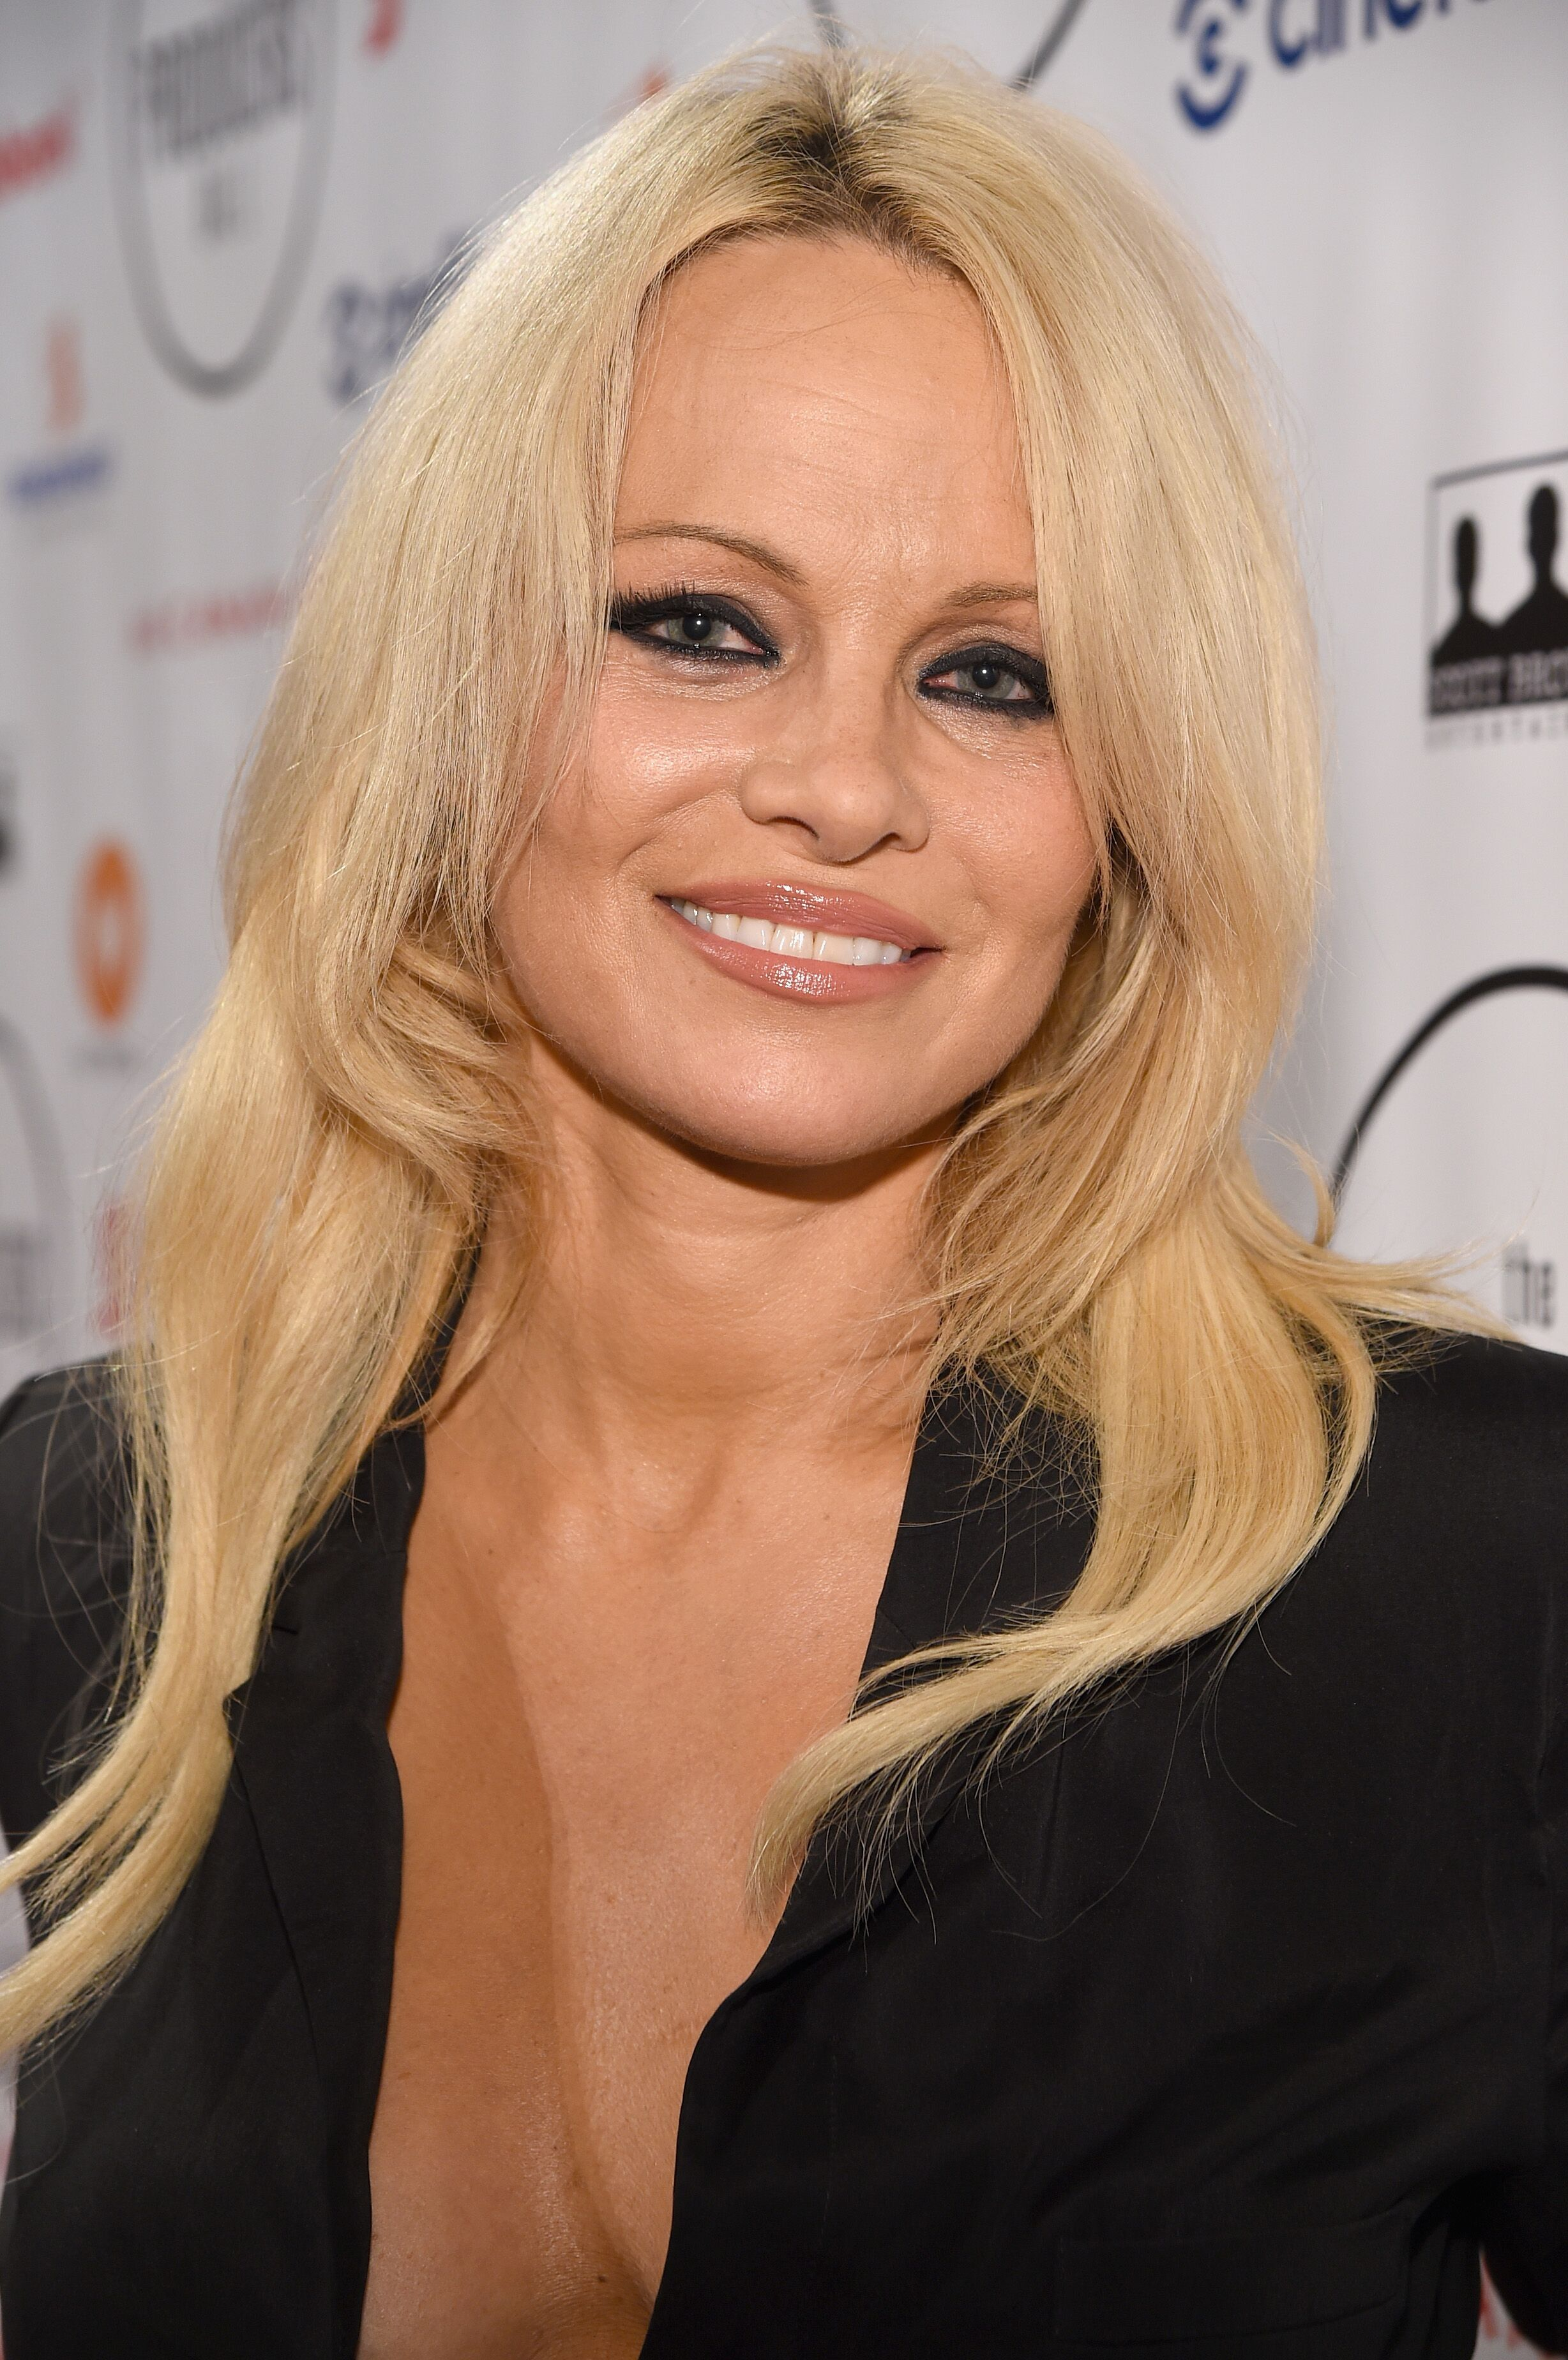 Pamela Anderson attends the 5th Annual Producers Ball presented by Scotiabank. | Source: Getty Images